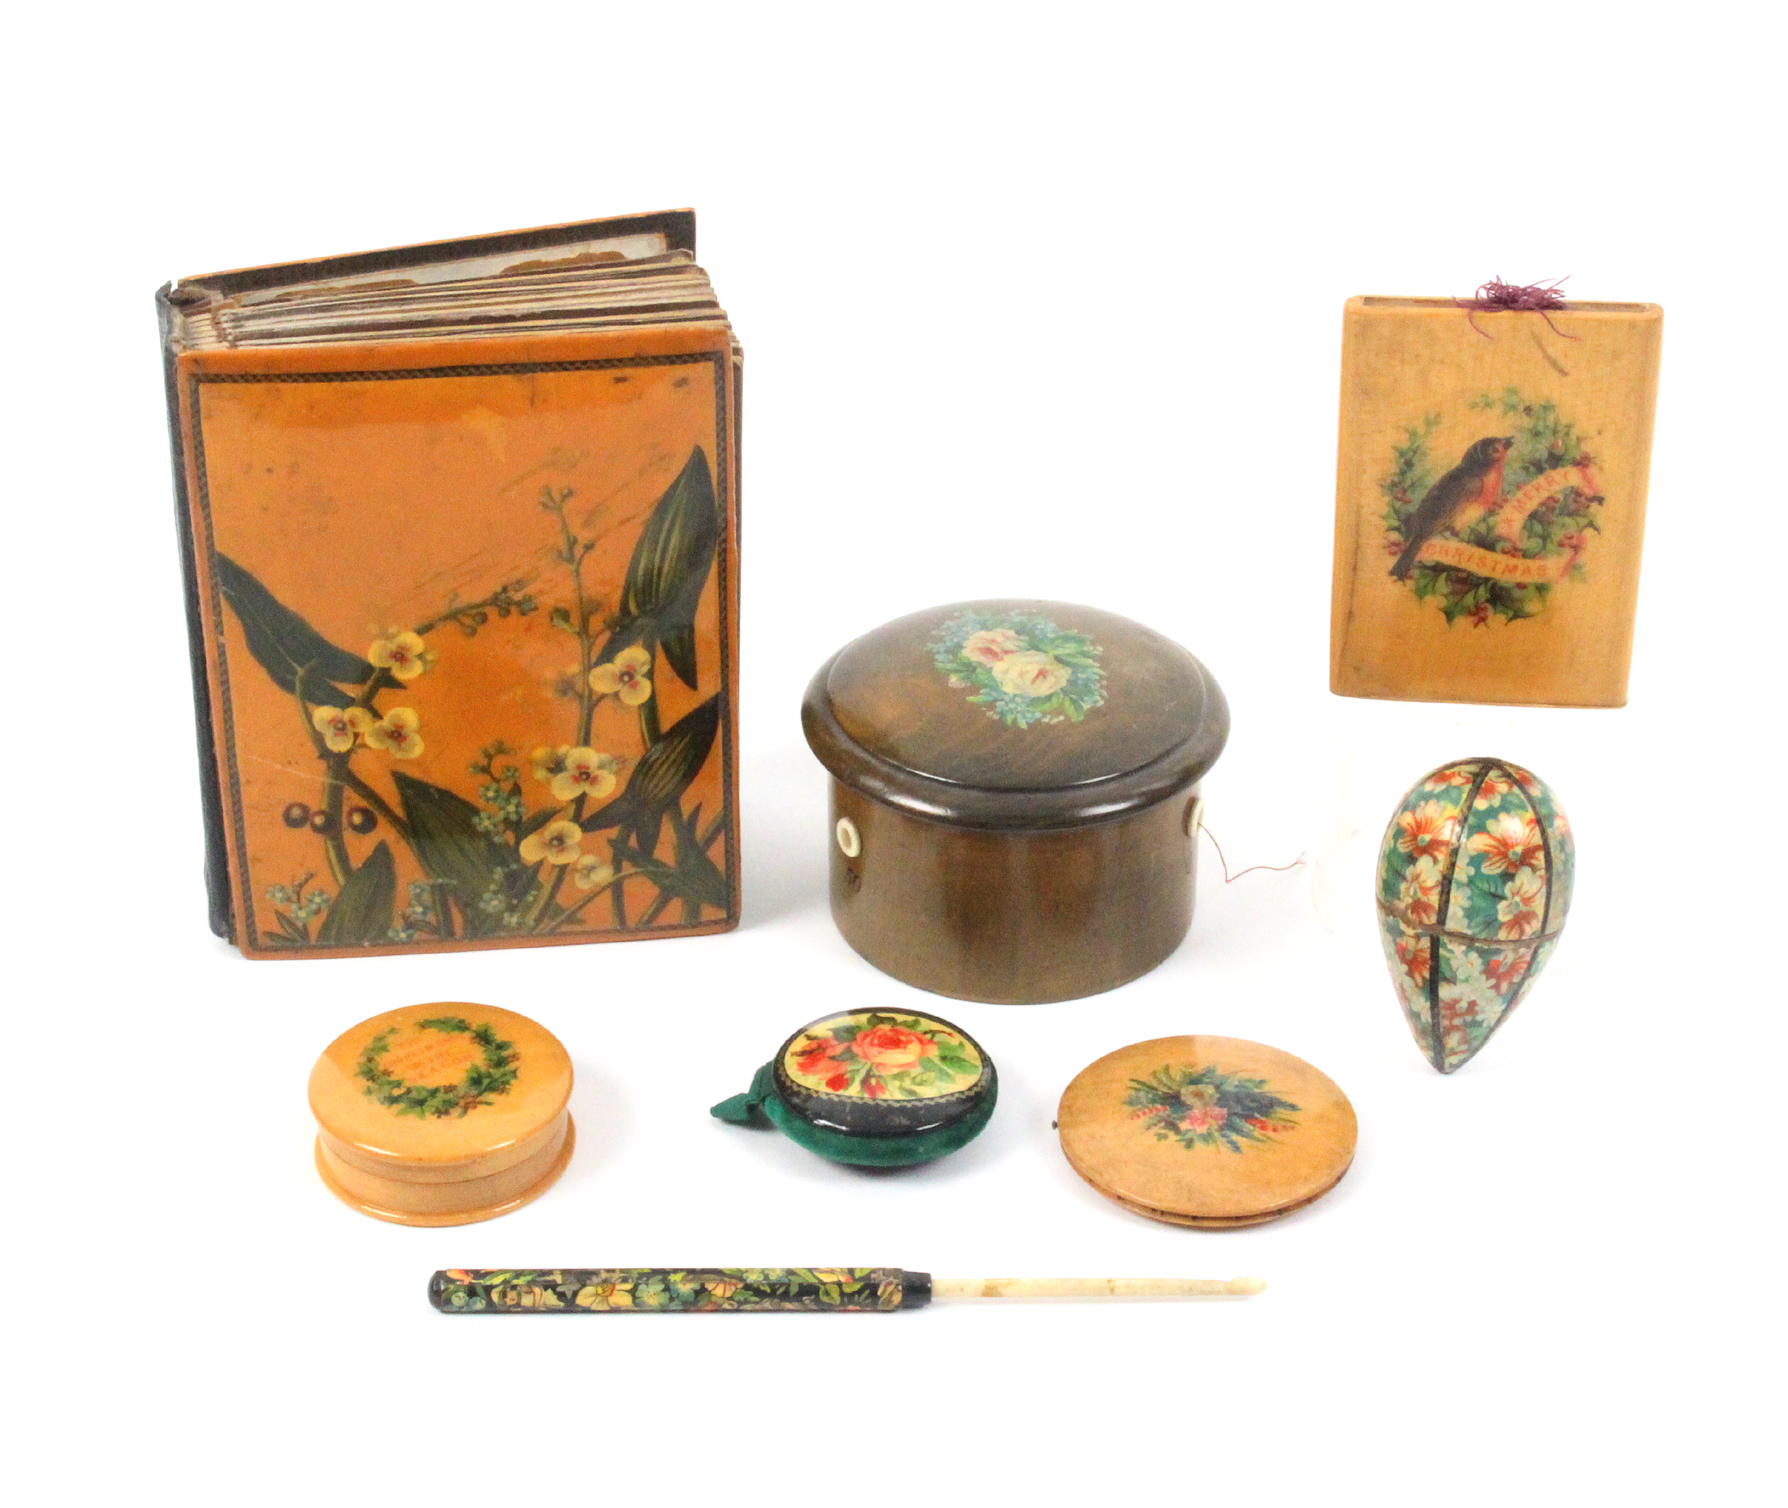 Mauchline ware - eight pieces comprising a small photograph album (floral), 13cm, a green stained